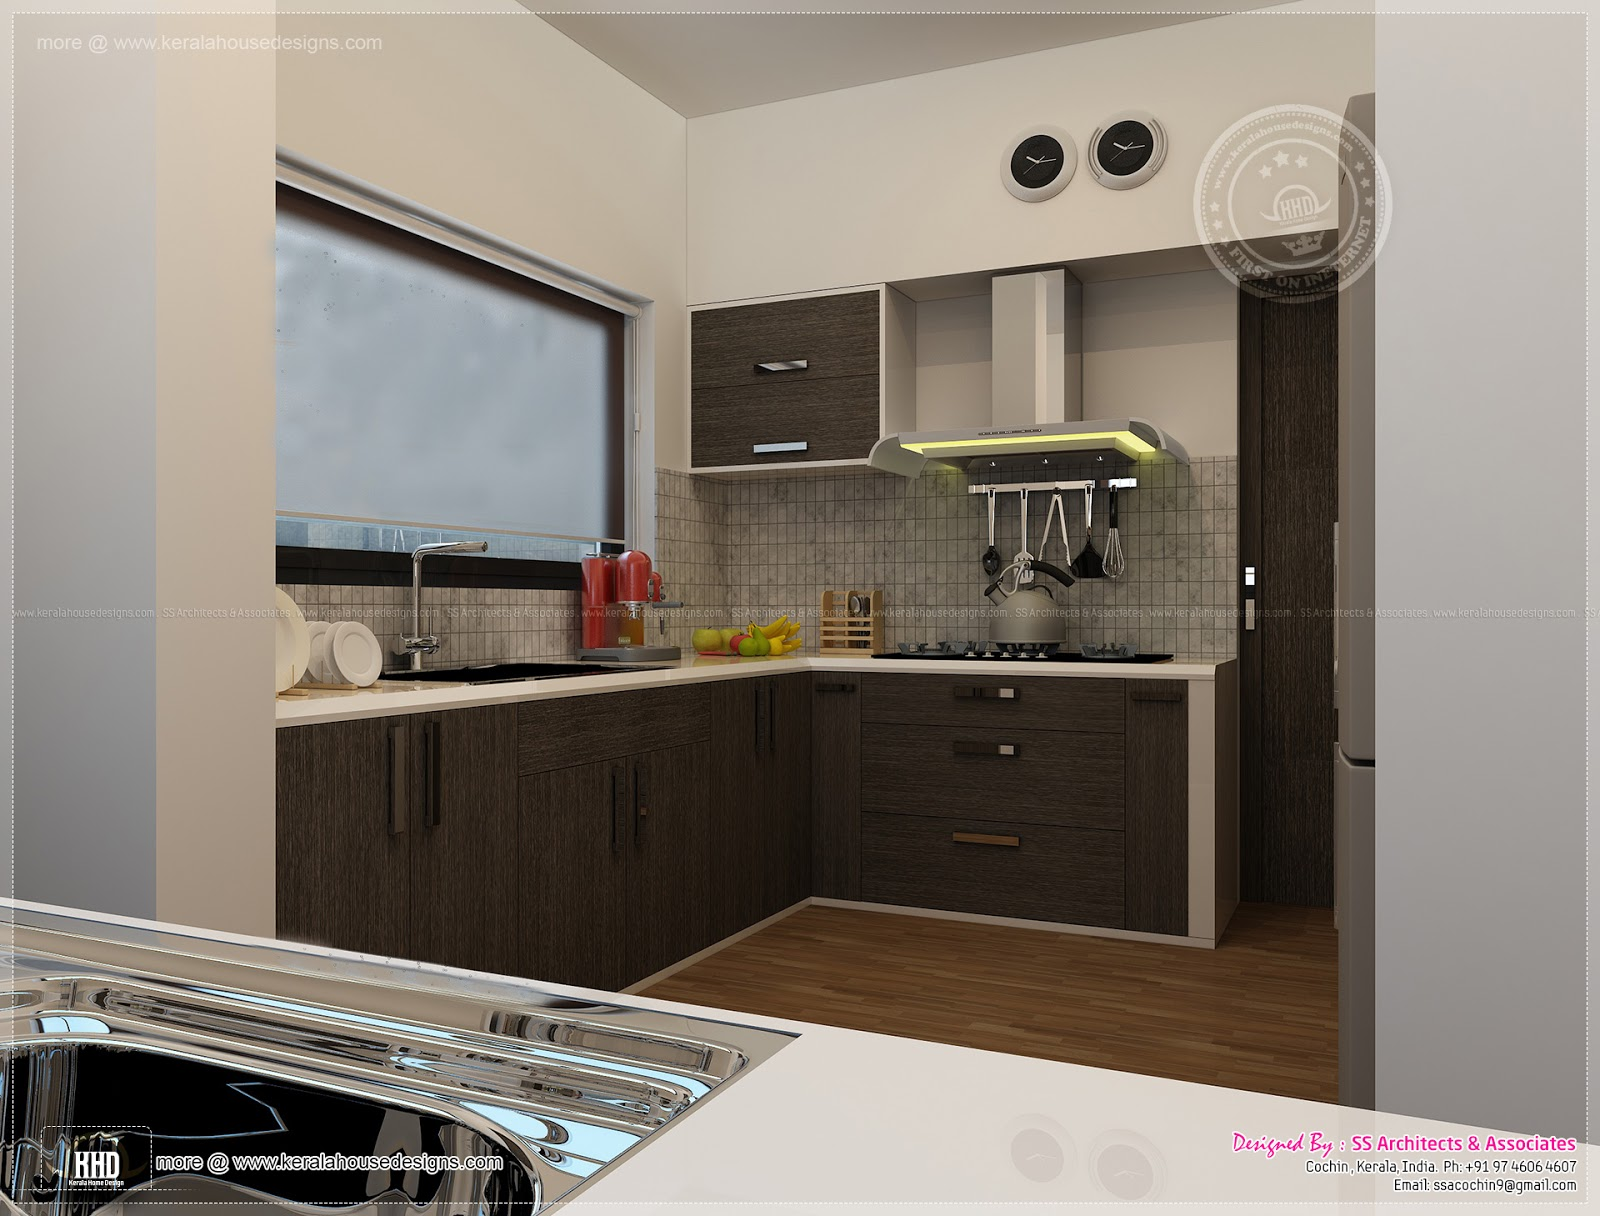 kitchen interior design photos in india indian kitchen interior design photos house furniture 451